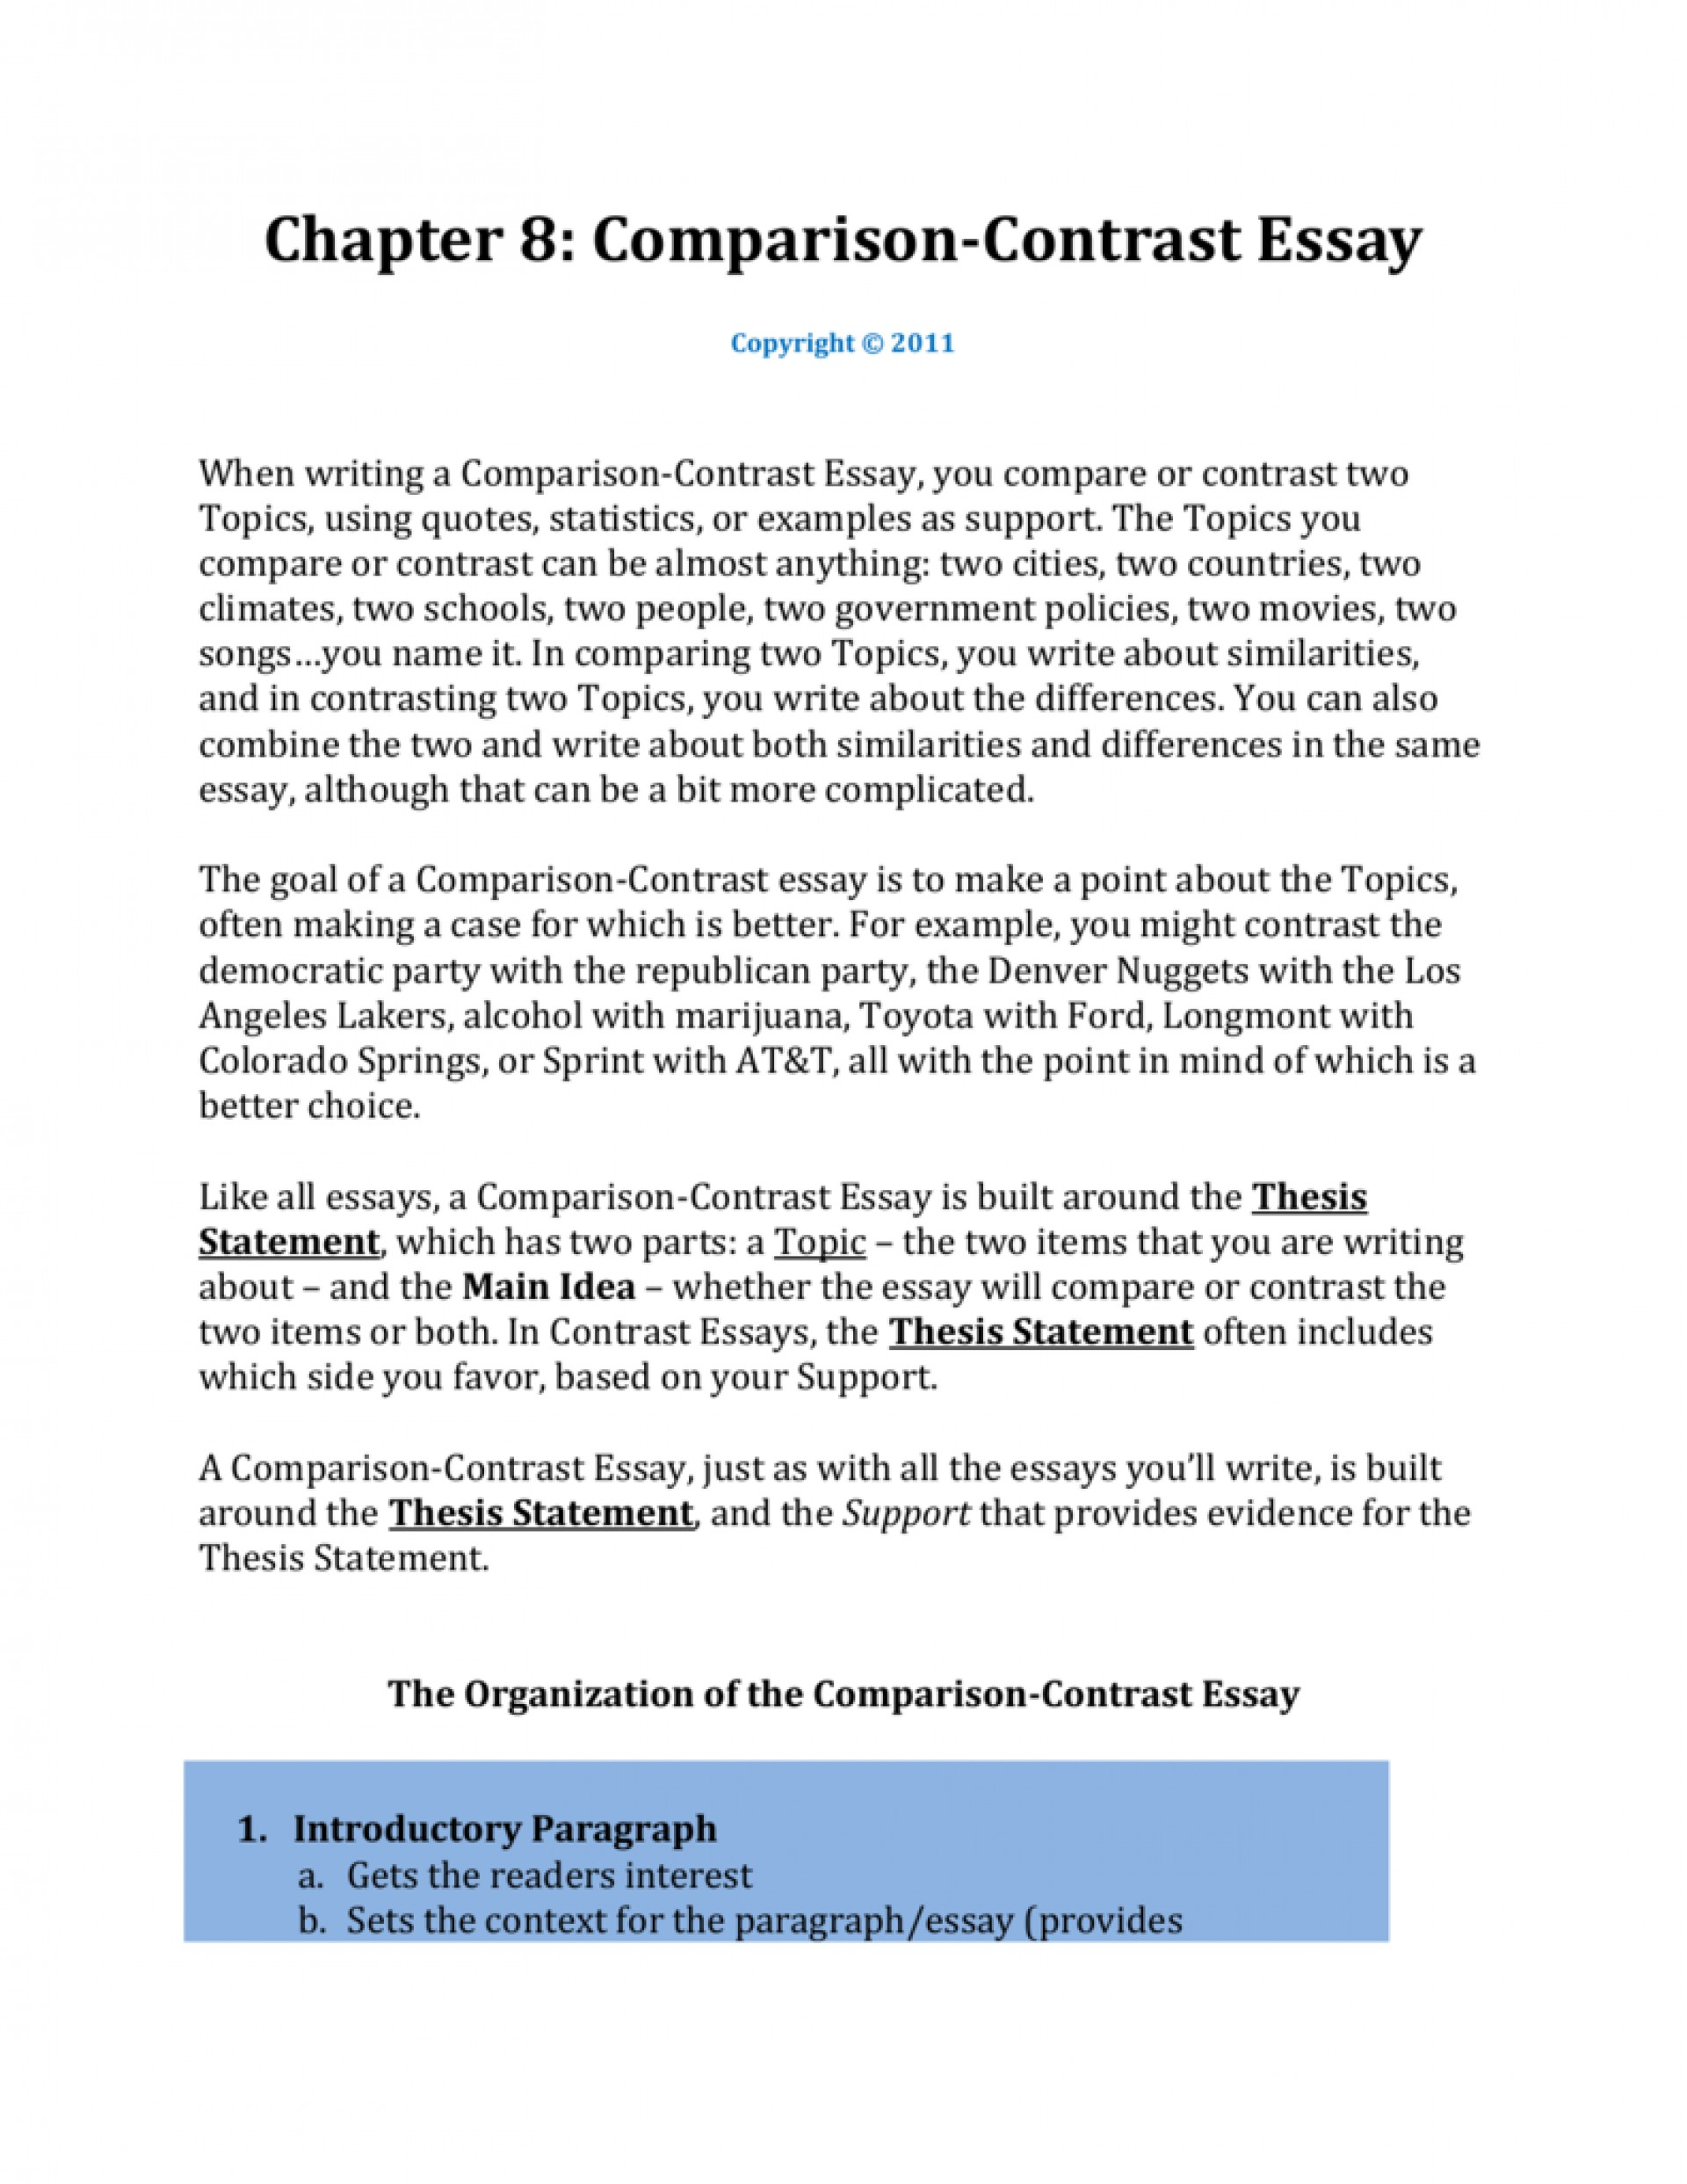 013 Compare Contrast Essays 007207405 1 Essay Best Topics Technology Comparison Outline And Format 1920